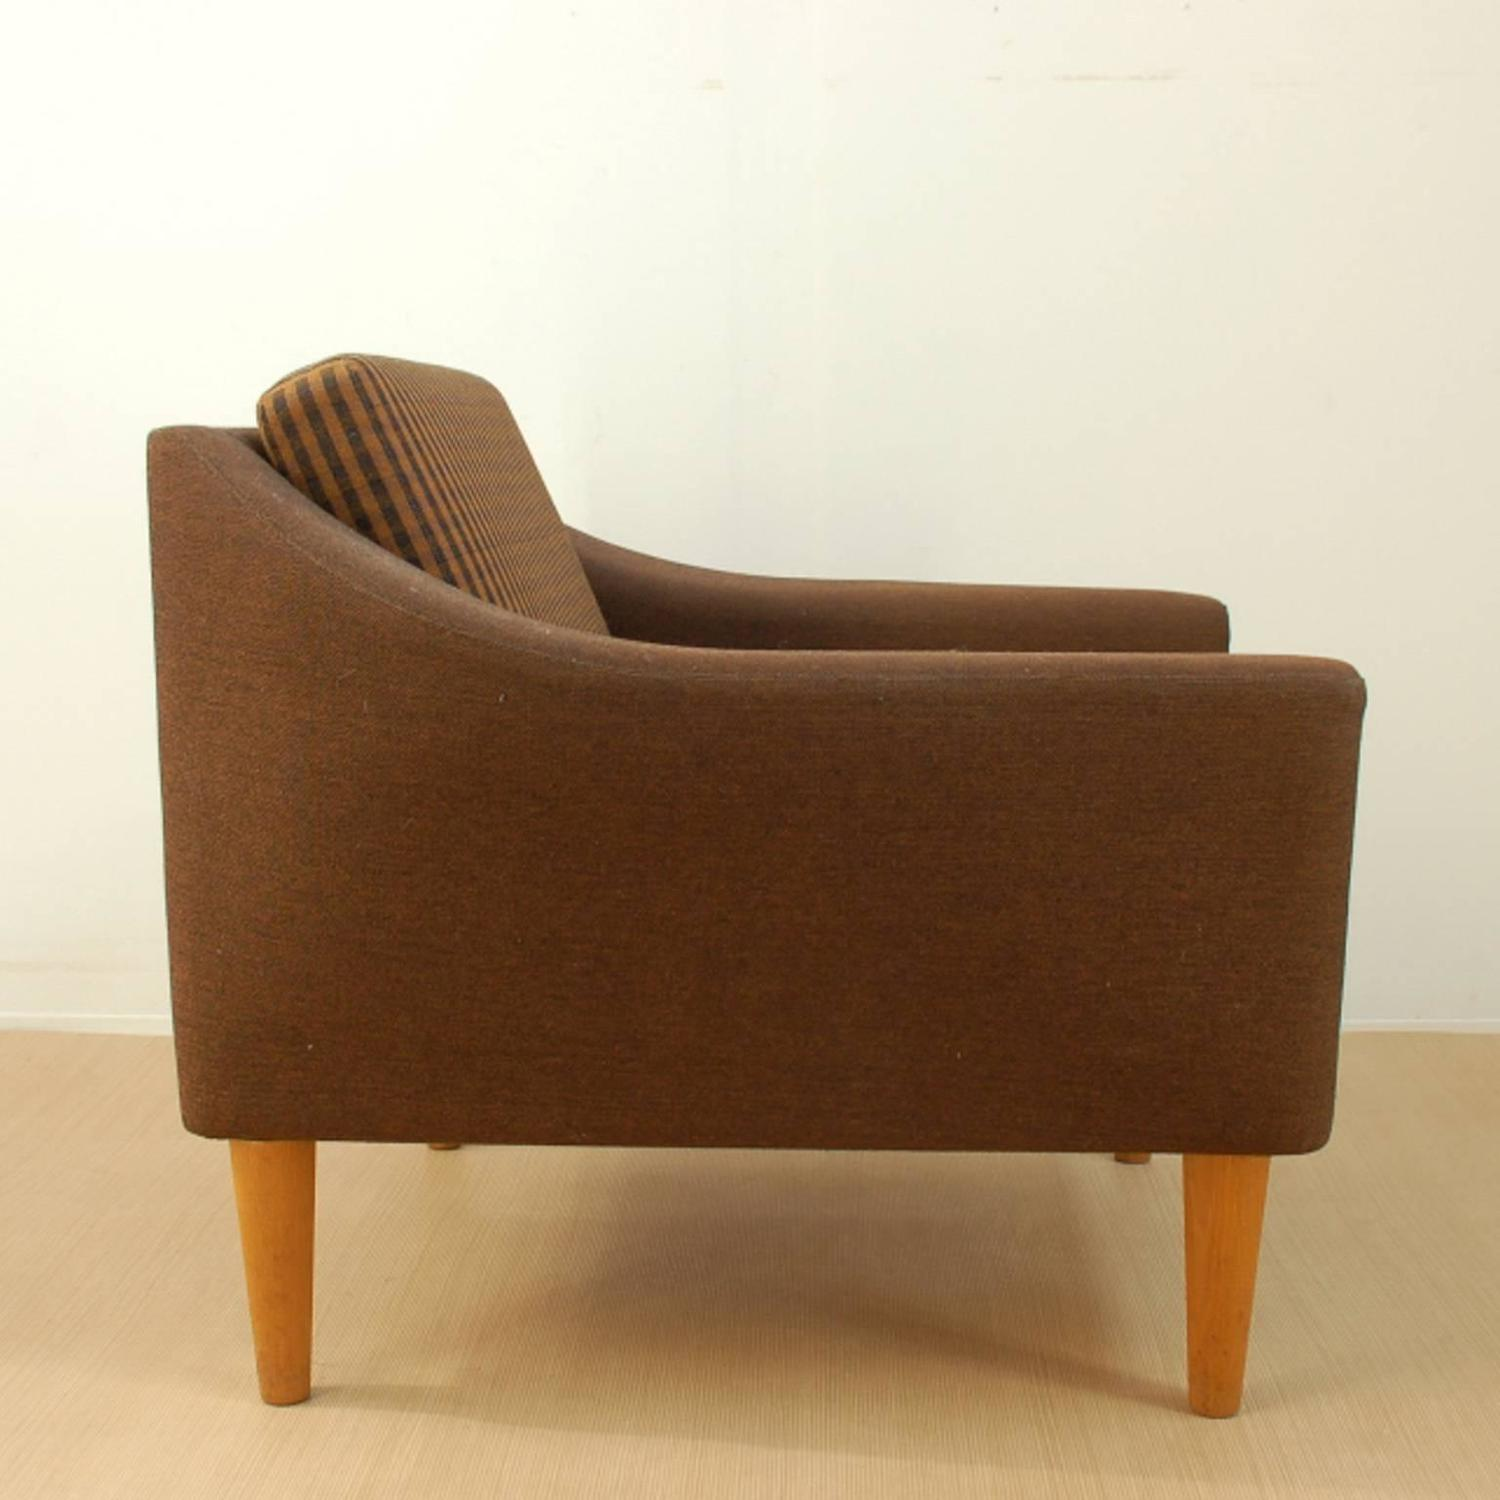 fortable Lounge Chair by DUX in the Style of Folke Ohlsson For Sale at 1st